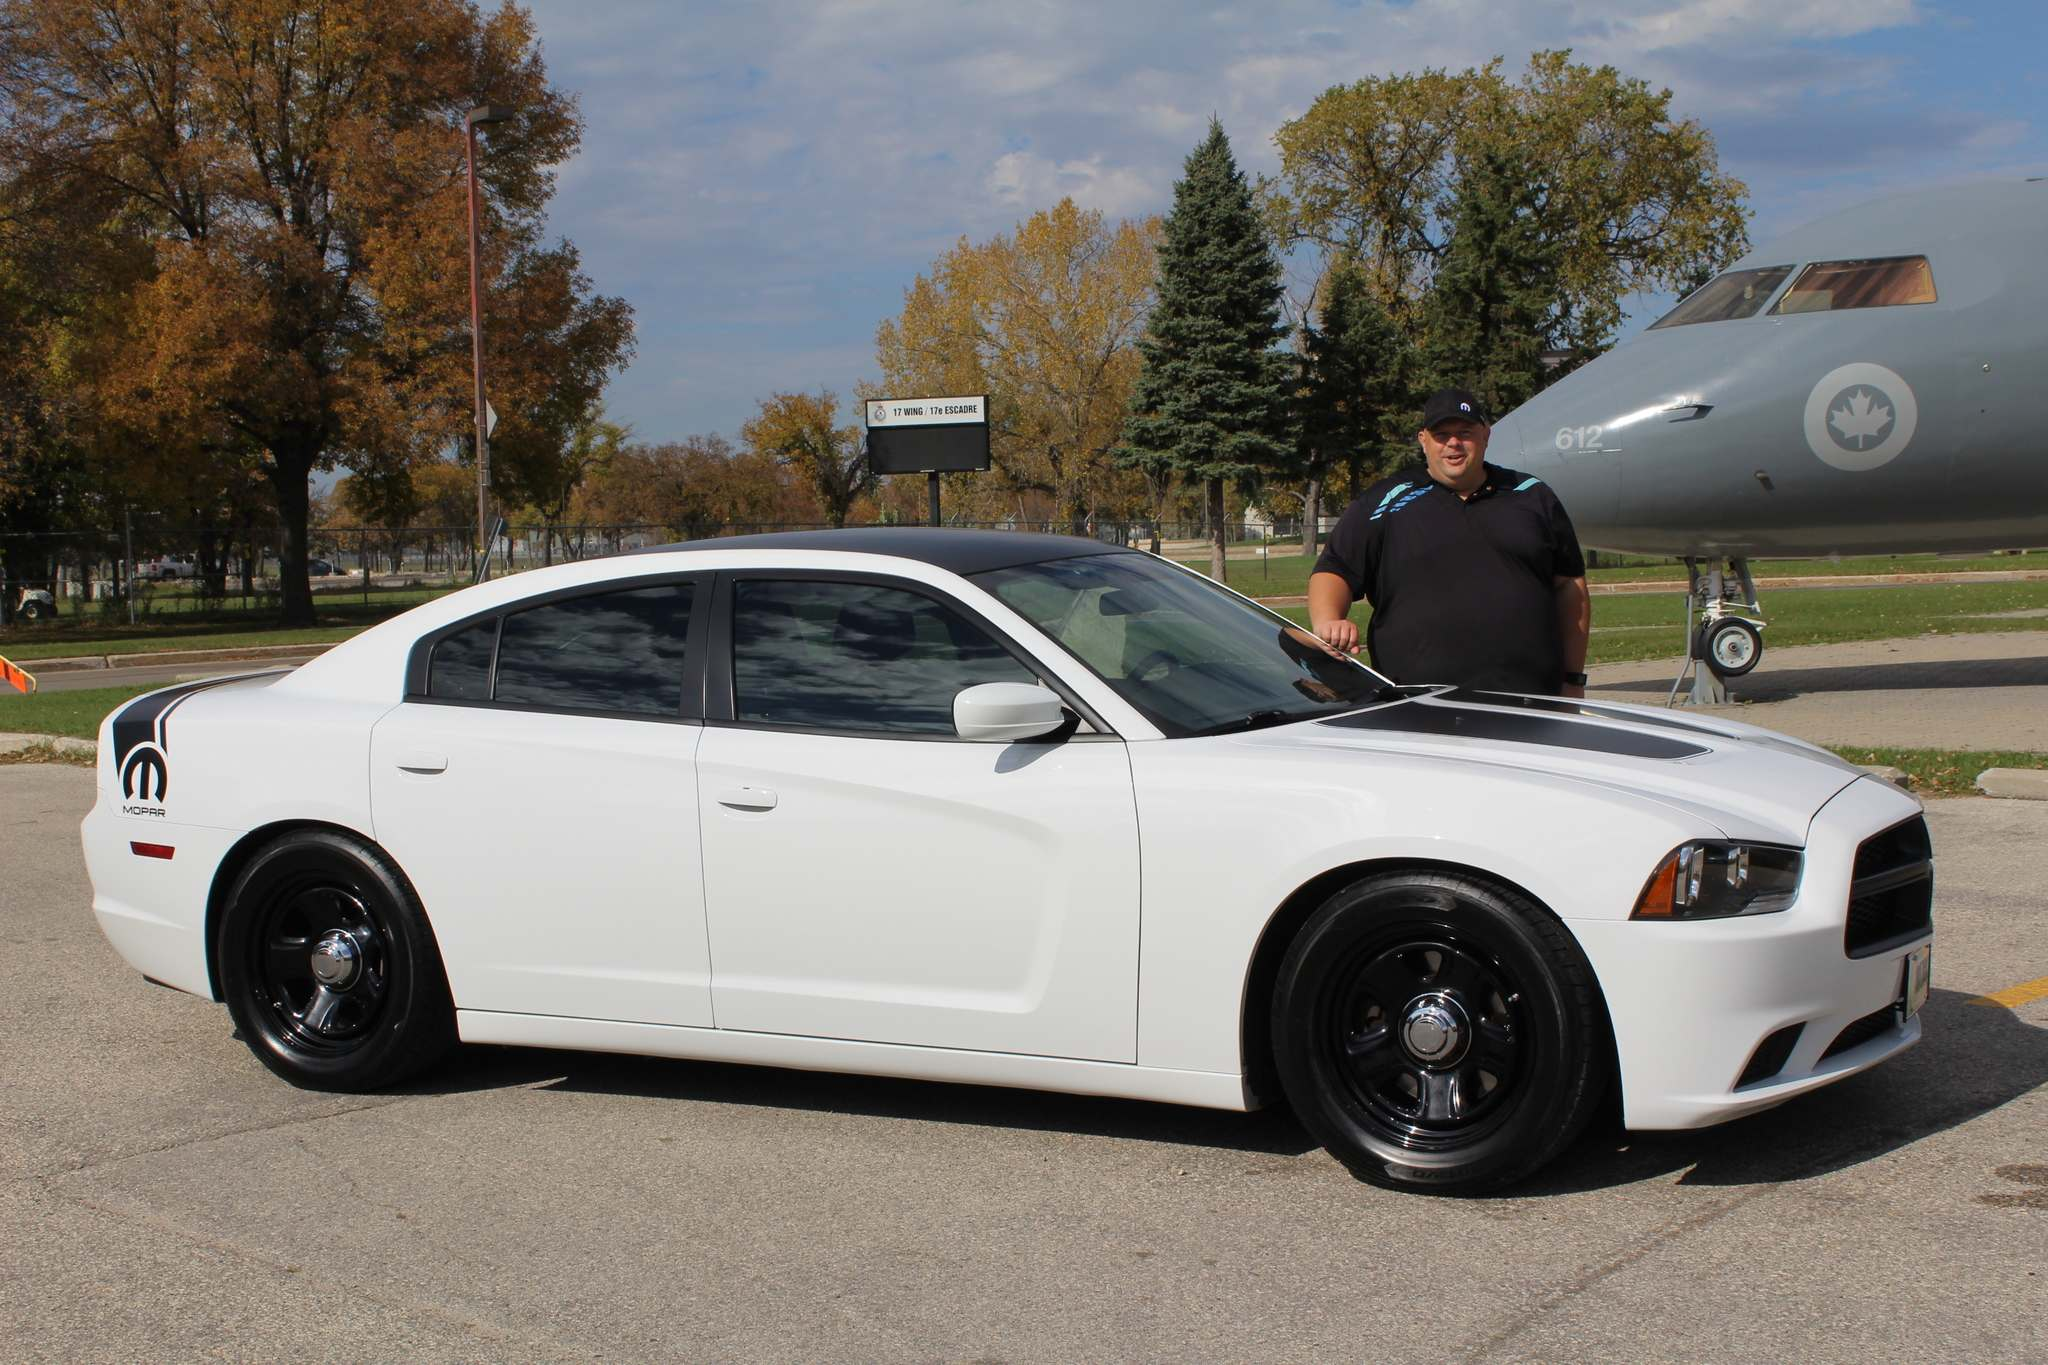 SUPPLIEDWinnipeg's Vince Proteau bought this 2013 Dodge Charger in 2014 when it only had 100 kilometres on it. He took it on memorable trips to British Columbia and Texas.